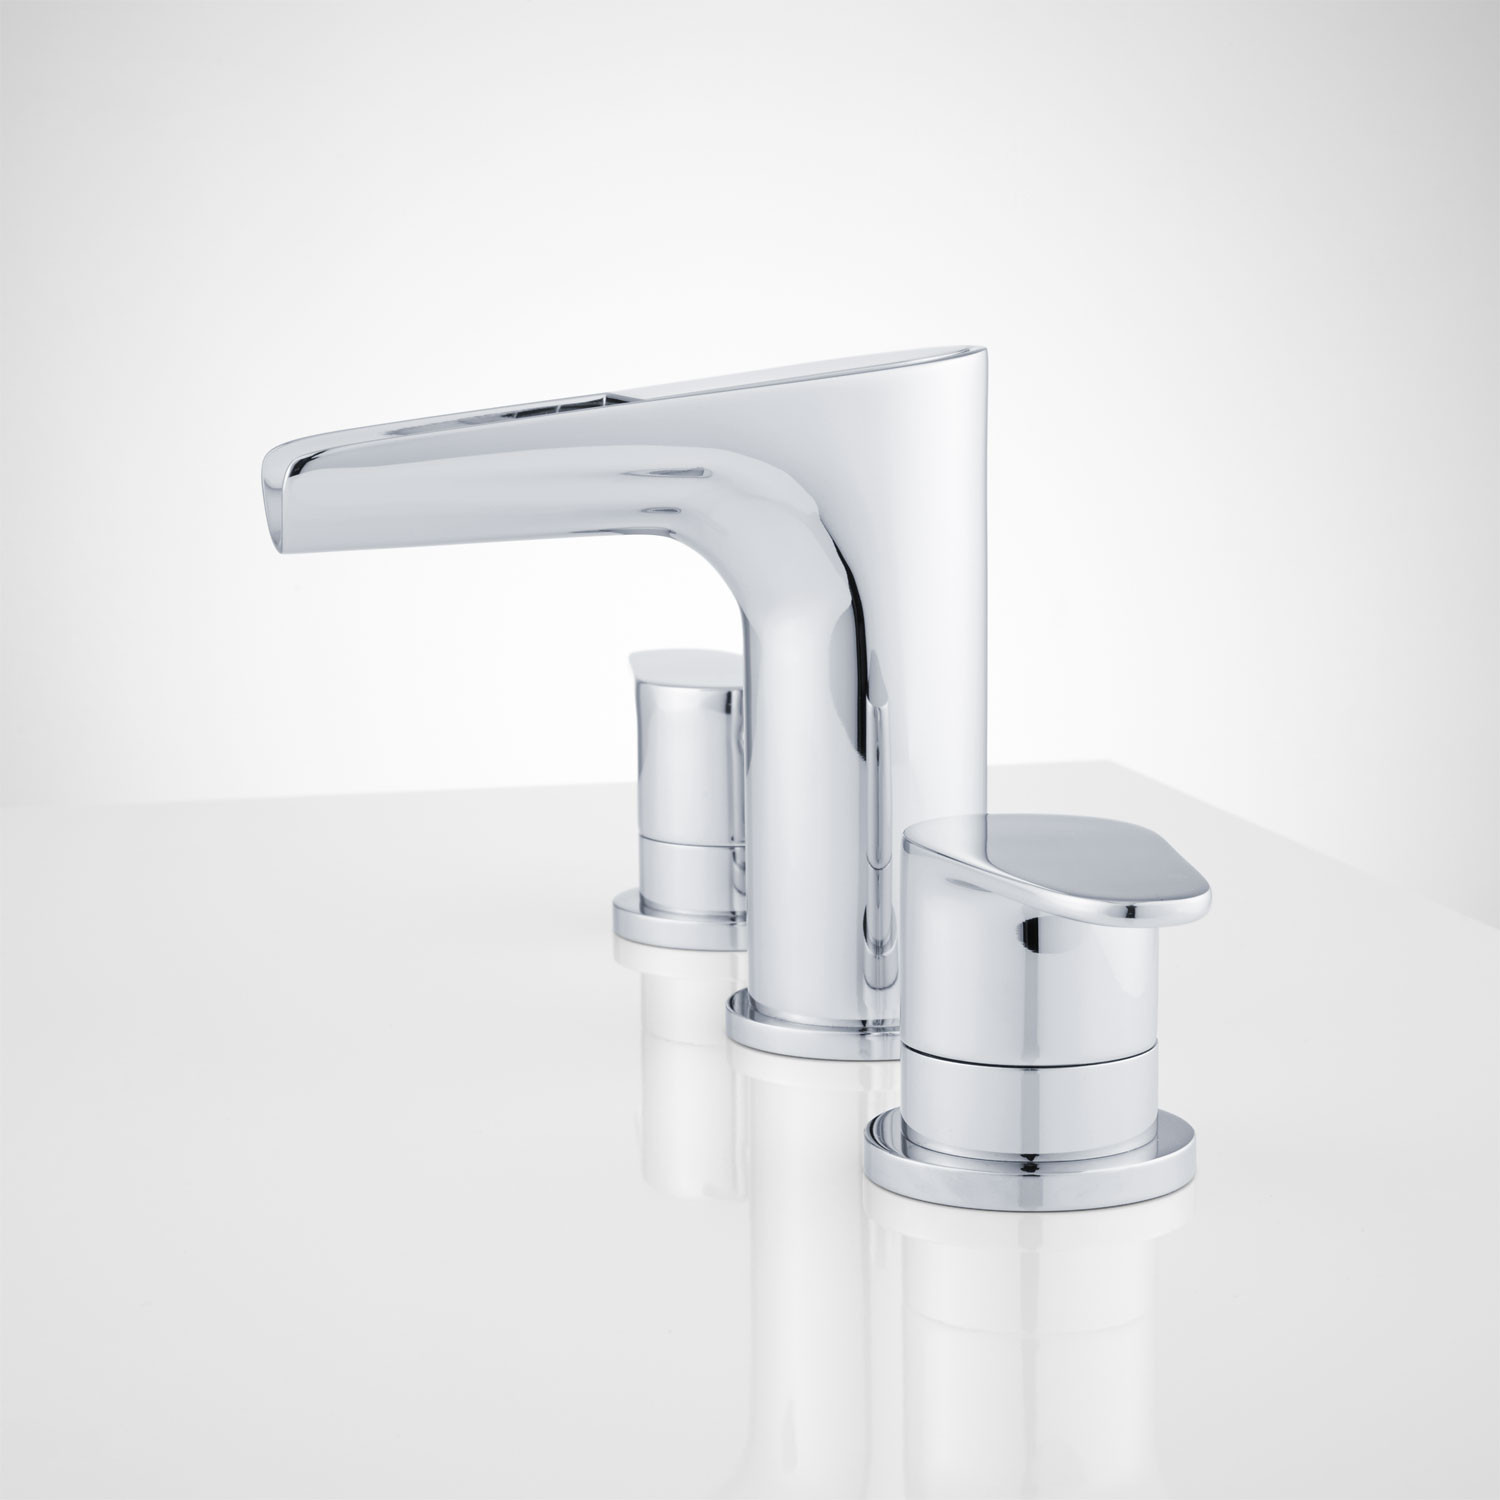 Best ideas about Waterfall Bathroom Faucet . Save or Pin Pagosa Widespread Waterfall Faucet Bathroom Sink Faucets Now.